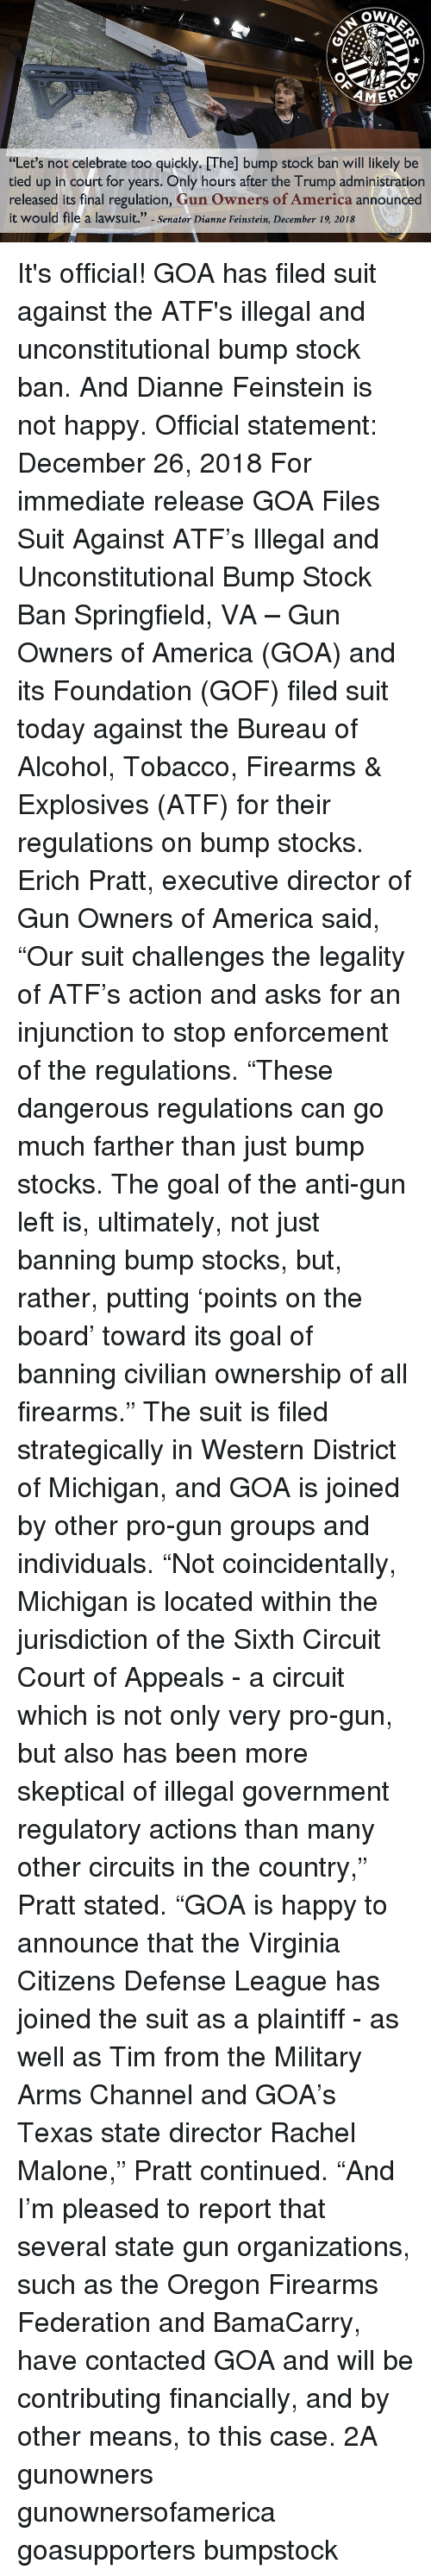 """federation: AMER  """"Let's not celebrate too quickly. [The] bump stock ban will likely be  tied up in court for years. Only hours after the Trump administration  released its final regulation, Gun Owners of America announced  it would file a lawsuit."""" -Senator Dianne Feinstein, December 19, 2018 It's official! GOA has filed suit against the ATF's illegal and unconstitutional bump stock ban. And Dianne Feinstein is not happy. Official statement: December 26, 2018 For immediate release GOA Files Suit Against ATF's Illegal and Unconstitutional Bump Stock Ban Springfield, VA – Gun Owners of America (GOA) and its Foundation (GOF) filed suit today against the Bureau of Alcohol, Tobacco, Firearms & Explosives (ATF) for their regulations on bump stocks. Erich Pratt, executive director of Gun Owners of America said, """"Our suit challenges the legality of ATF's action and asks for an injunction to stop enforcement of the regulations. """"These dangerous regulations can go much farther than just bump stocks. The goal of the anti-gun left is, ultimately, not just banning bump stocks, but, rather, putting 'points on the board' toward its goal of banning civilian ownership of all firearms."""" The suit is filed strategically in Western District of Michigan, and GOA is joined by other pro-gun groups and individuals. """"Not coincidentally, Michigan is located within the jurisdiction of the Sixth Circuit Court of Appeals - a circuit which is not only very pro-gun, but also has been more skeptical of illegal government regulatory actions than many other circuits in the country,"""" Pratt stated. """"GOA is happy to announce that the Virginia Citizens Defense League has joined the suit as a plaintiff - as well as Tim from the Military Arms Channel and GOA's Texas state director Rachel Malone,"""" Pratt continued. """"And I'm pleased to report that several state gun organizations, such as the Oregon Firearms Federation and BamaCarry, have contacted GOA and will be contributing financially, and by other means,"""